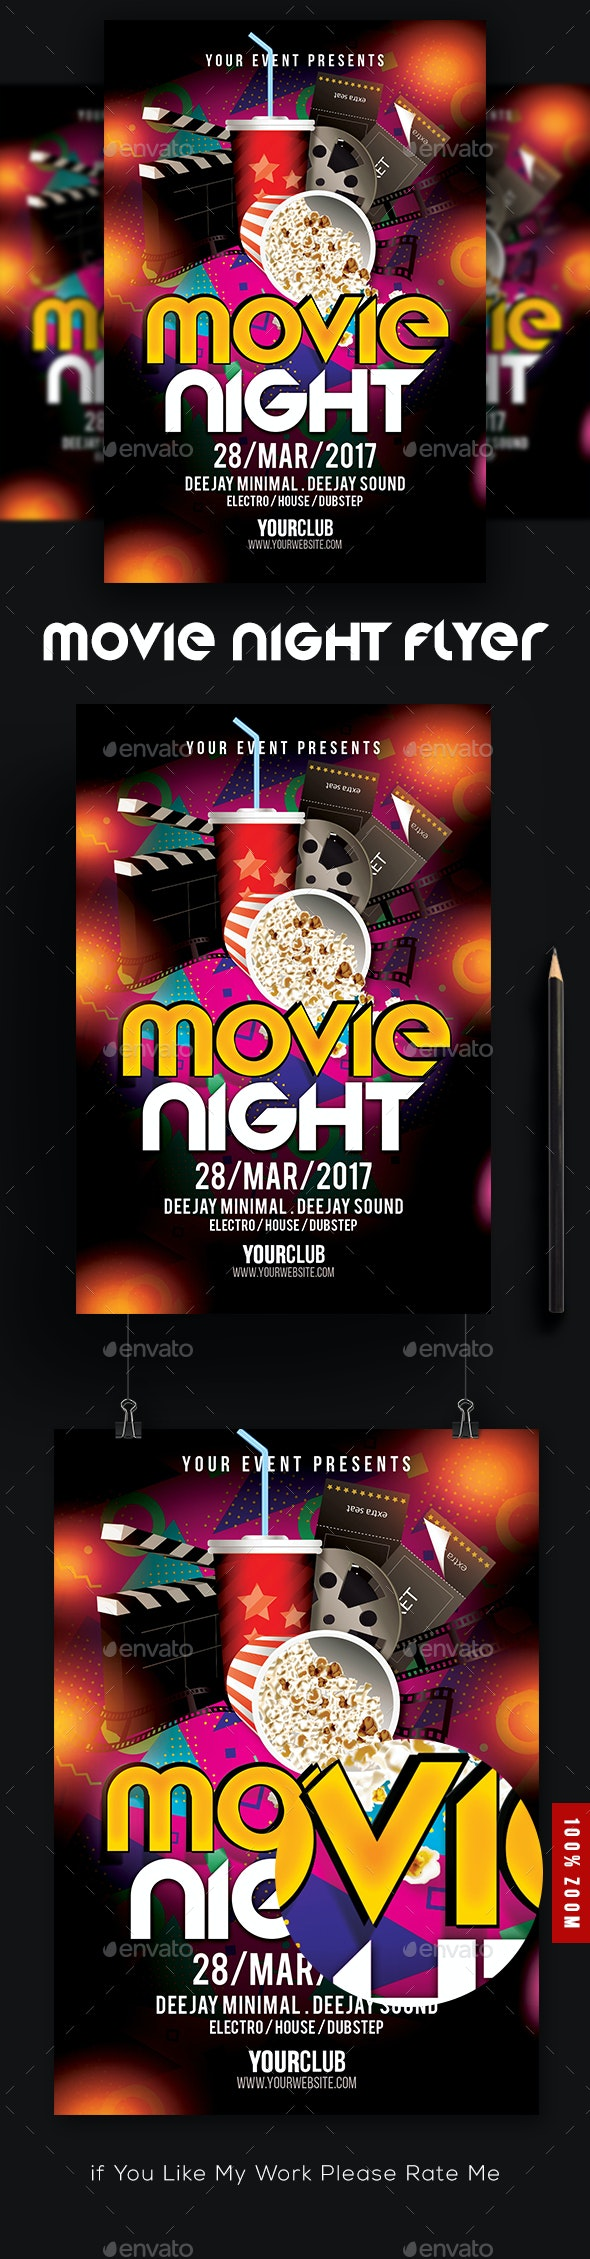 Movie Night Poster Template - Events Flyers